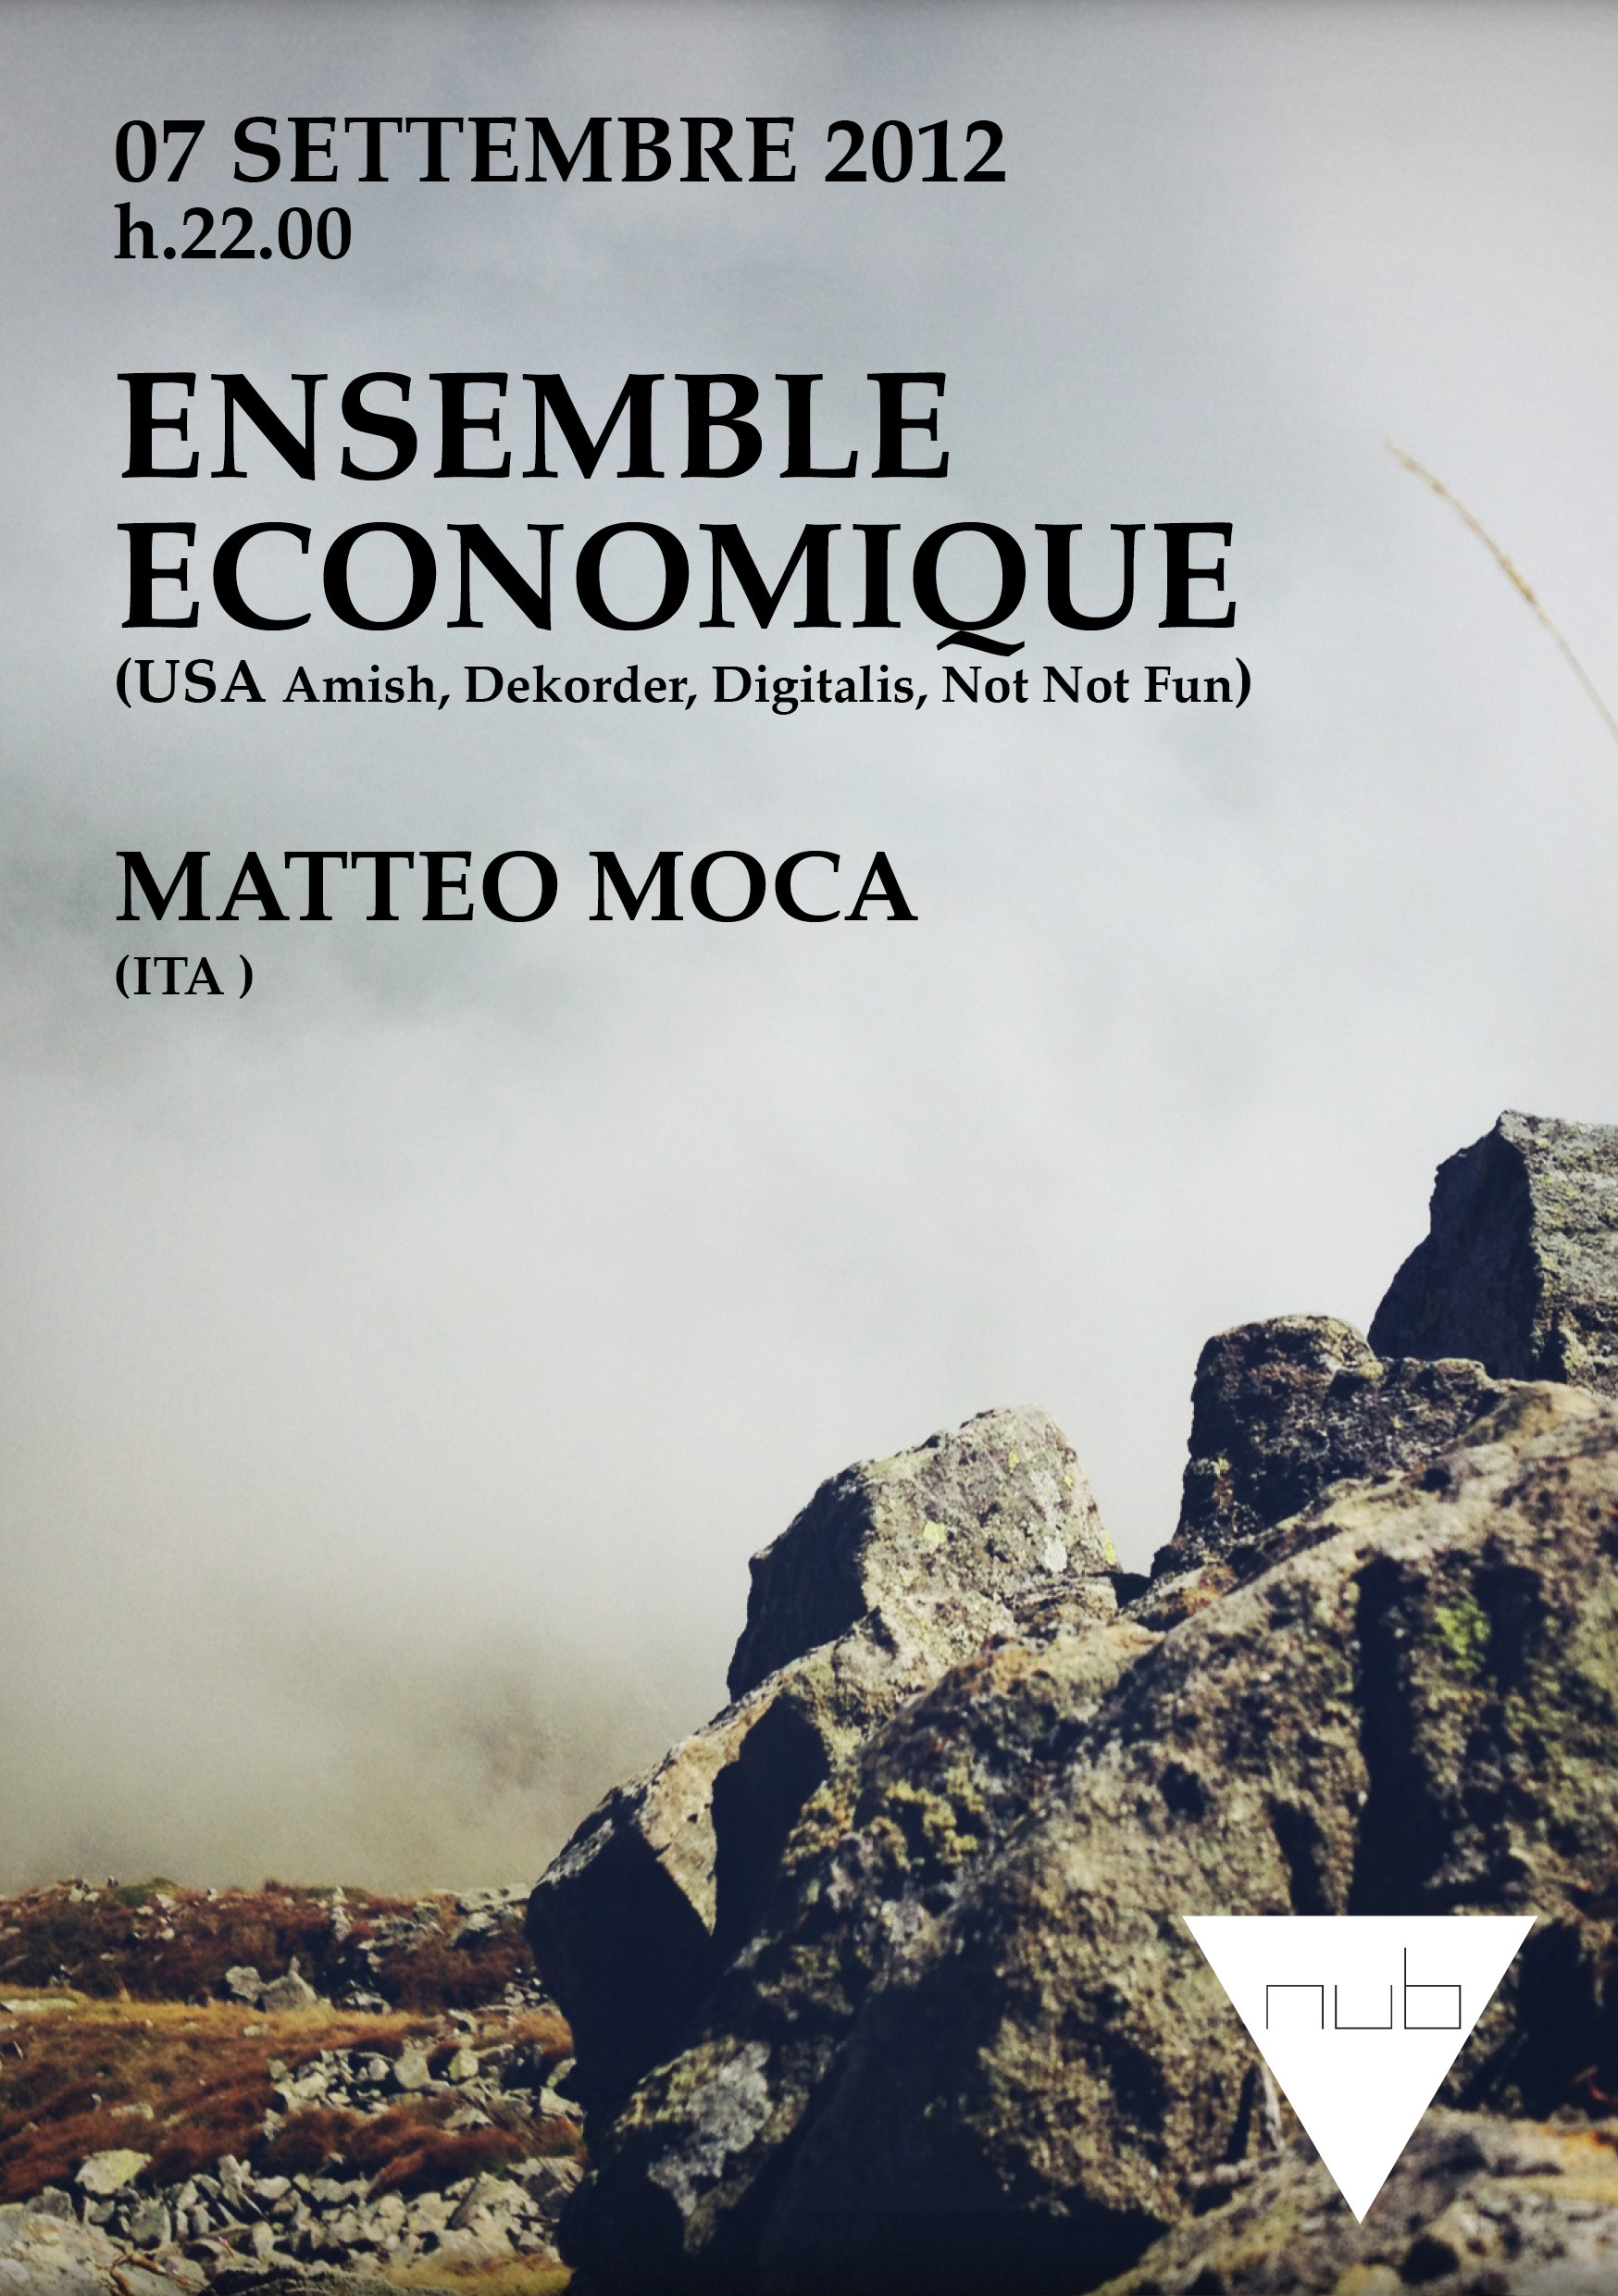 ENSEMBLE ECONOMIQUE | 07.09.2012